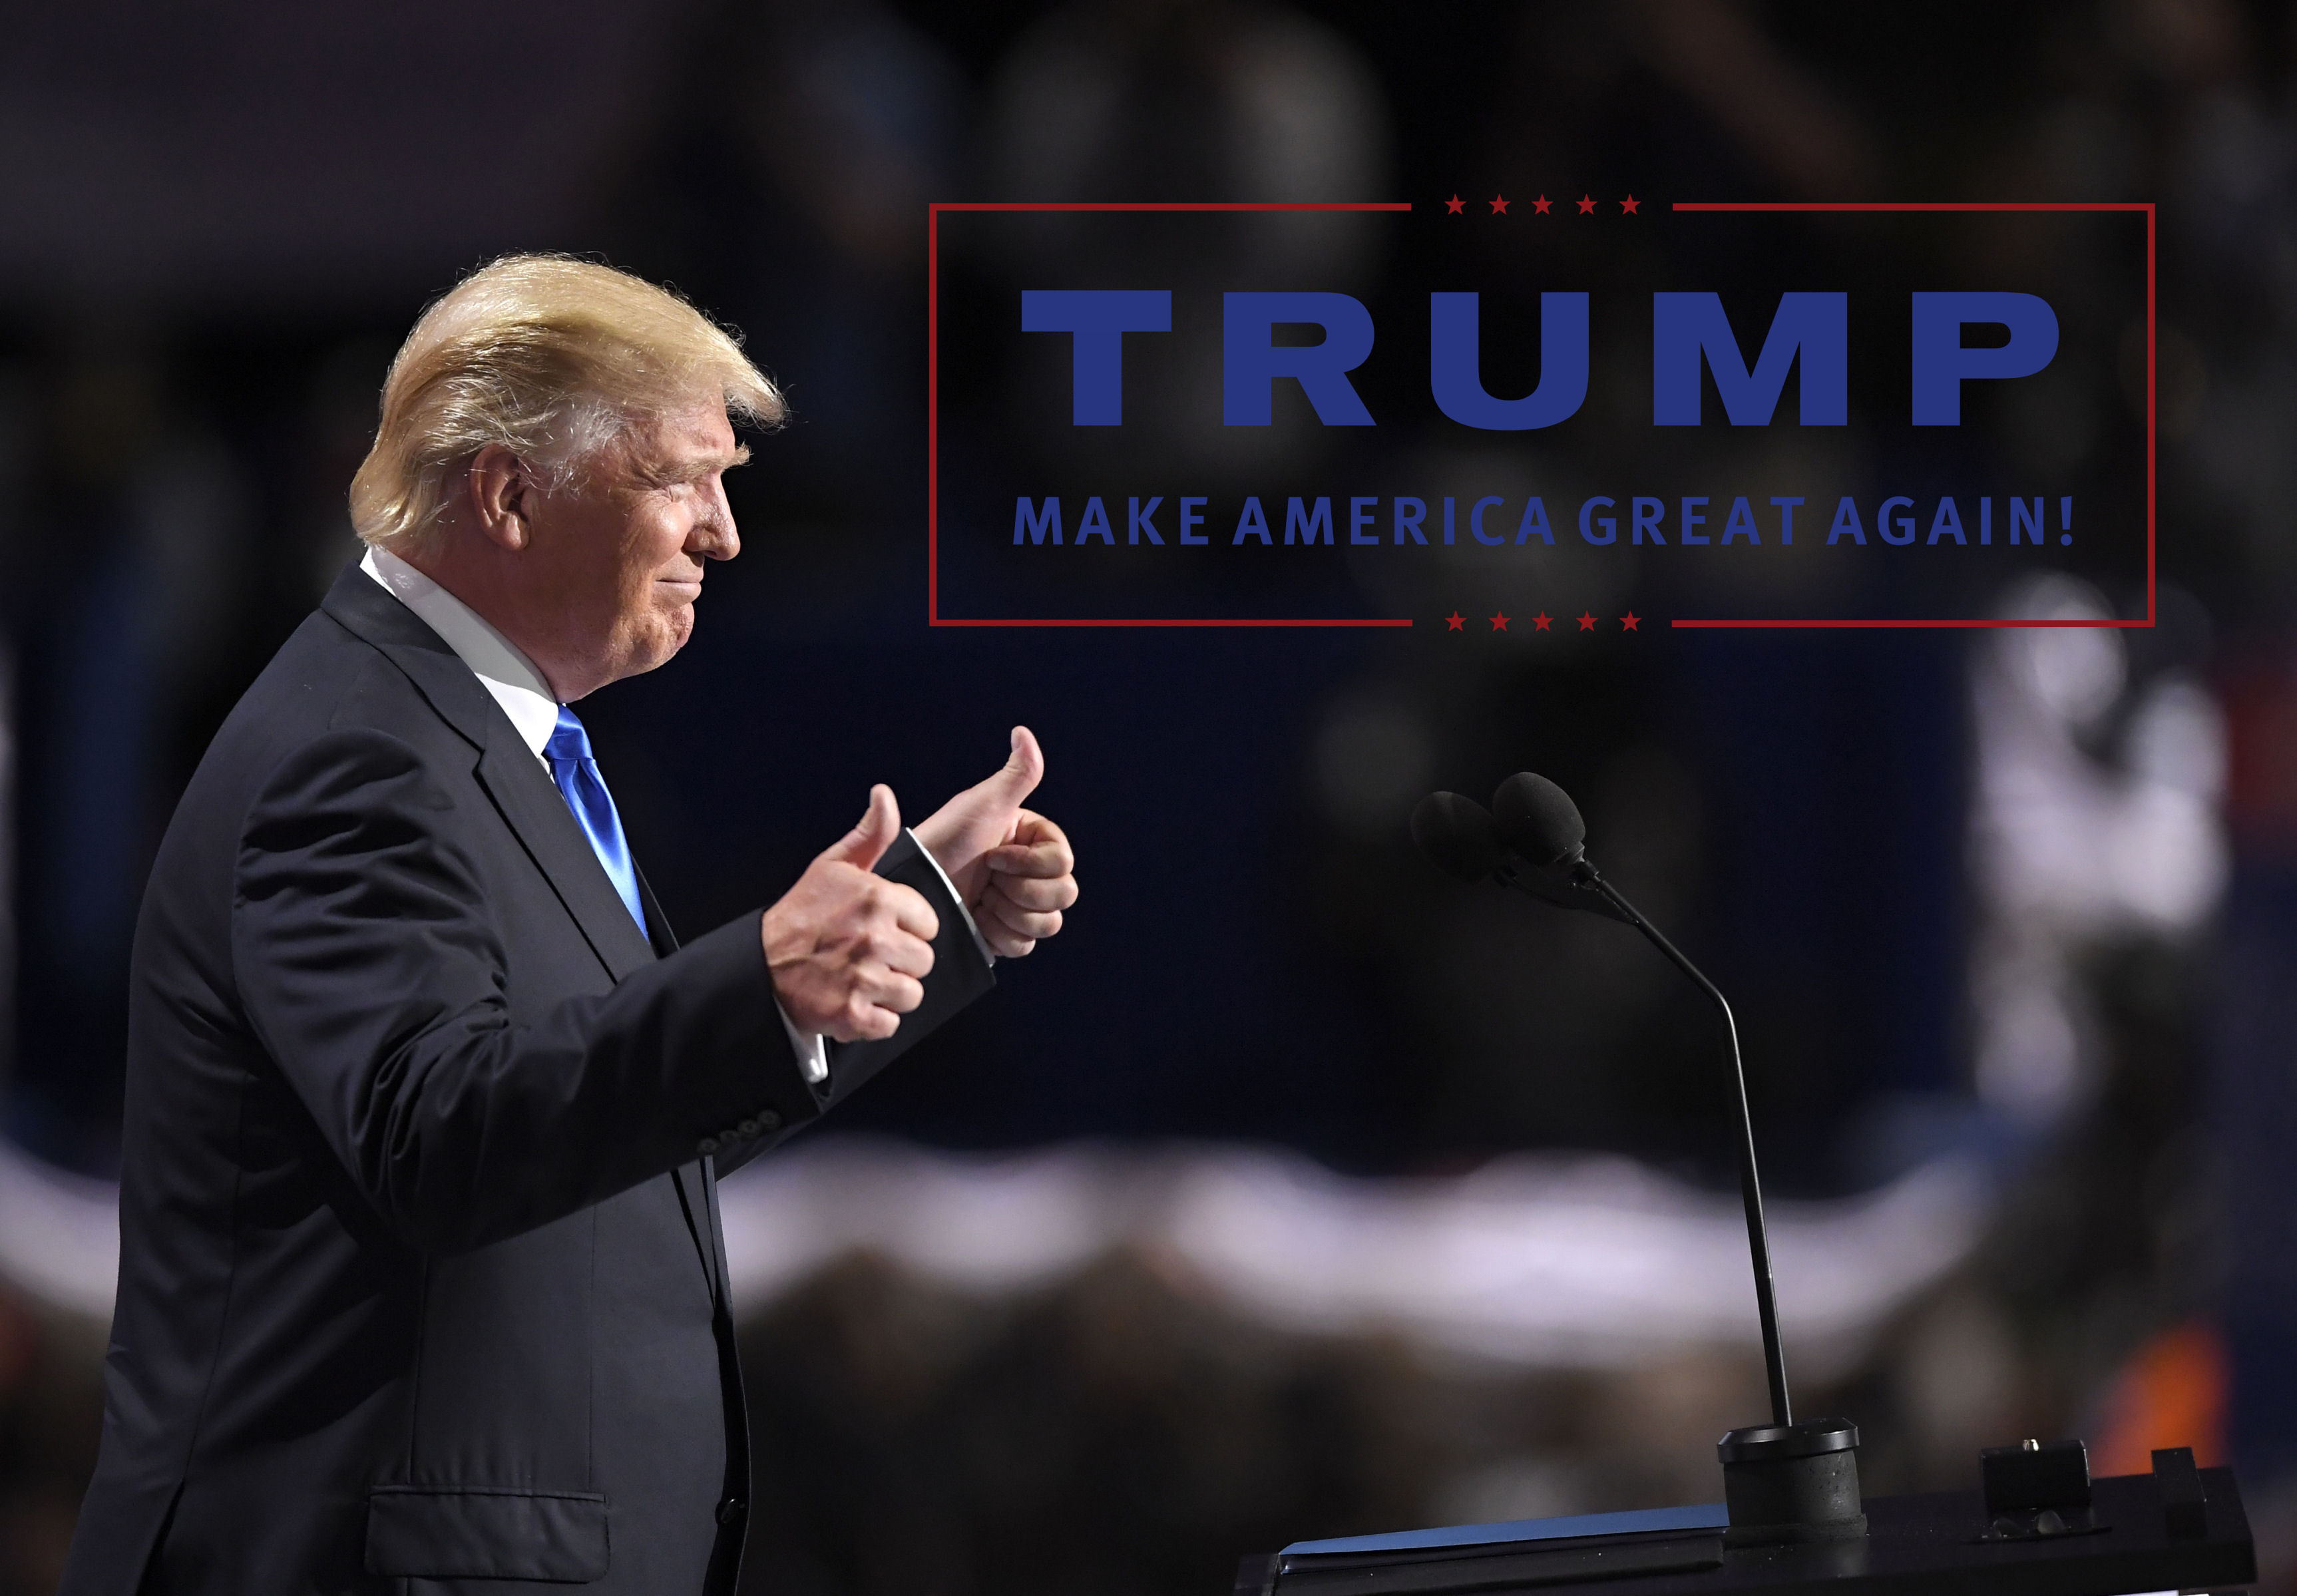 donald trump images donald trump make america great again